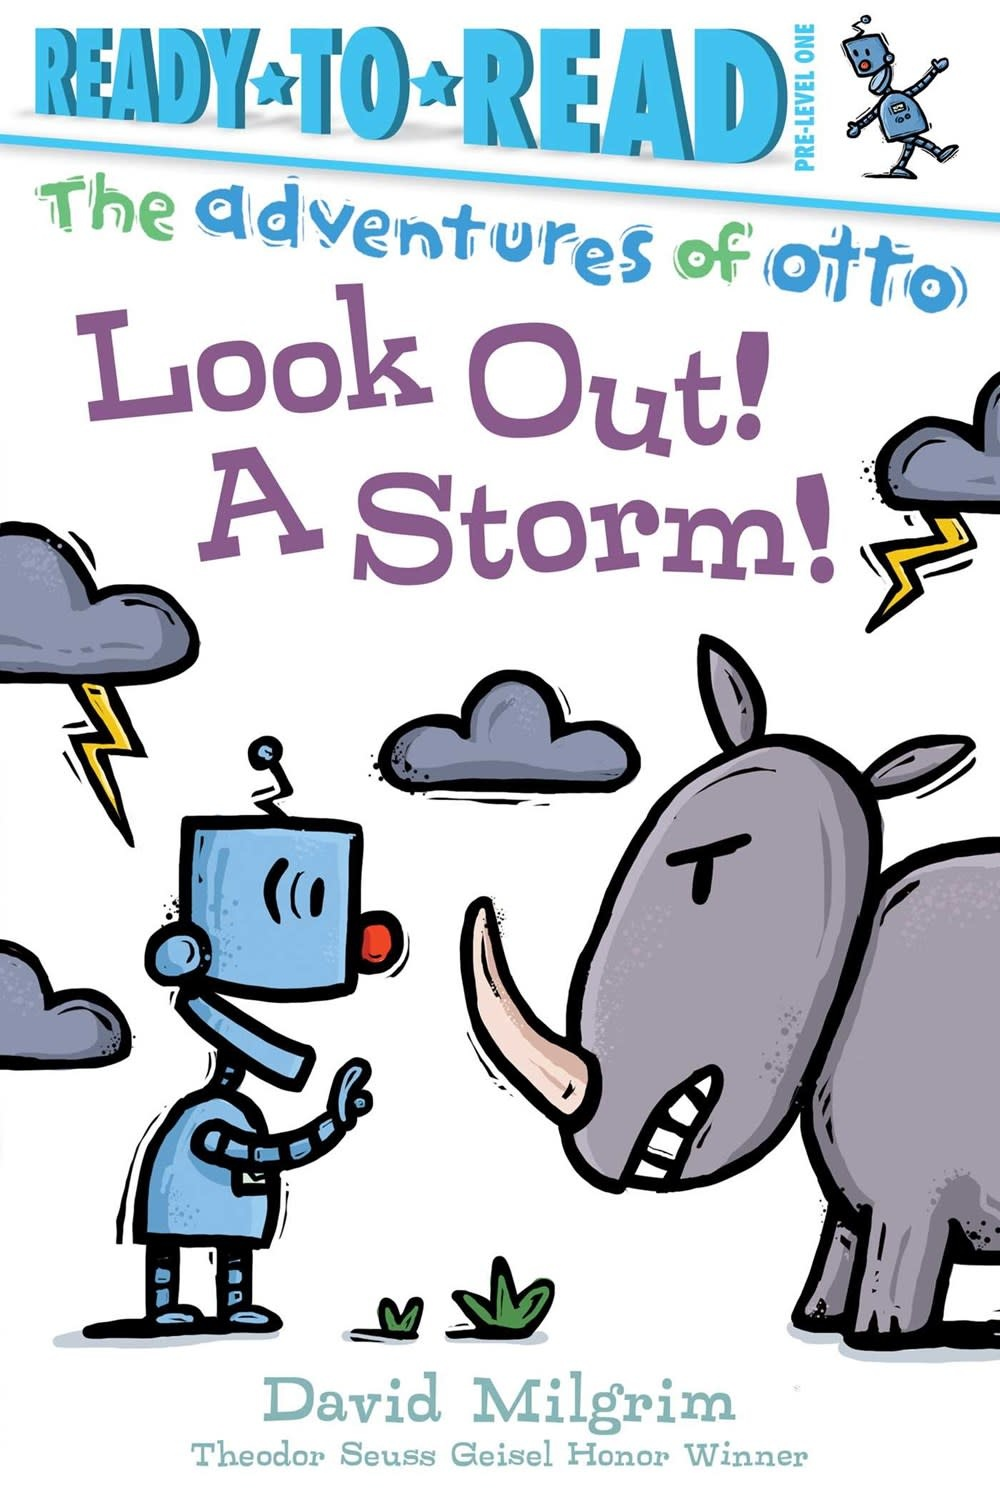 Simon Spotlight Adventures of Otto: Look Out! A Storm! (Ready-to-Read, Lvl Pre-1)